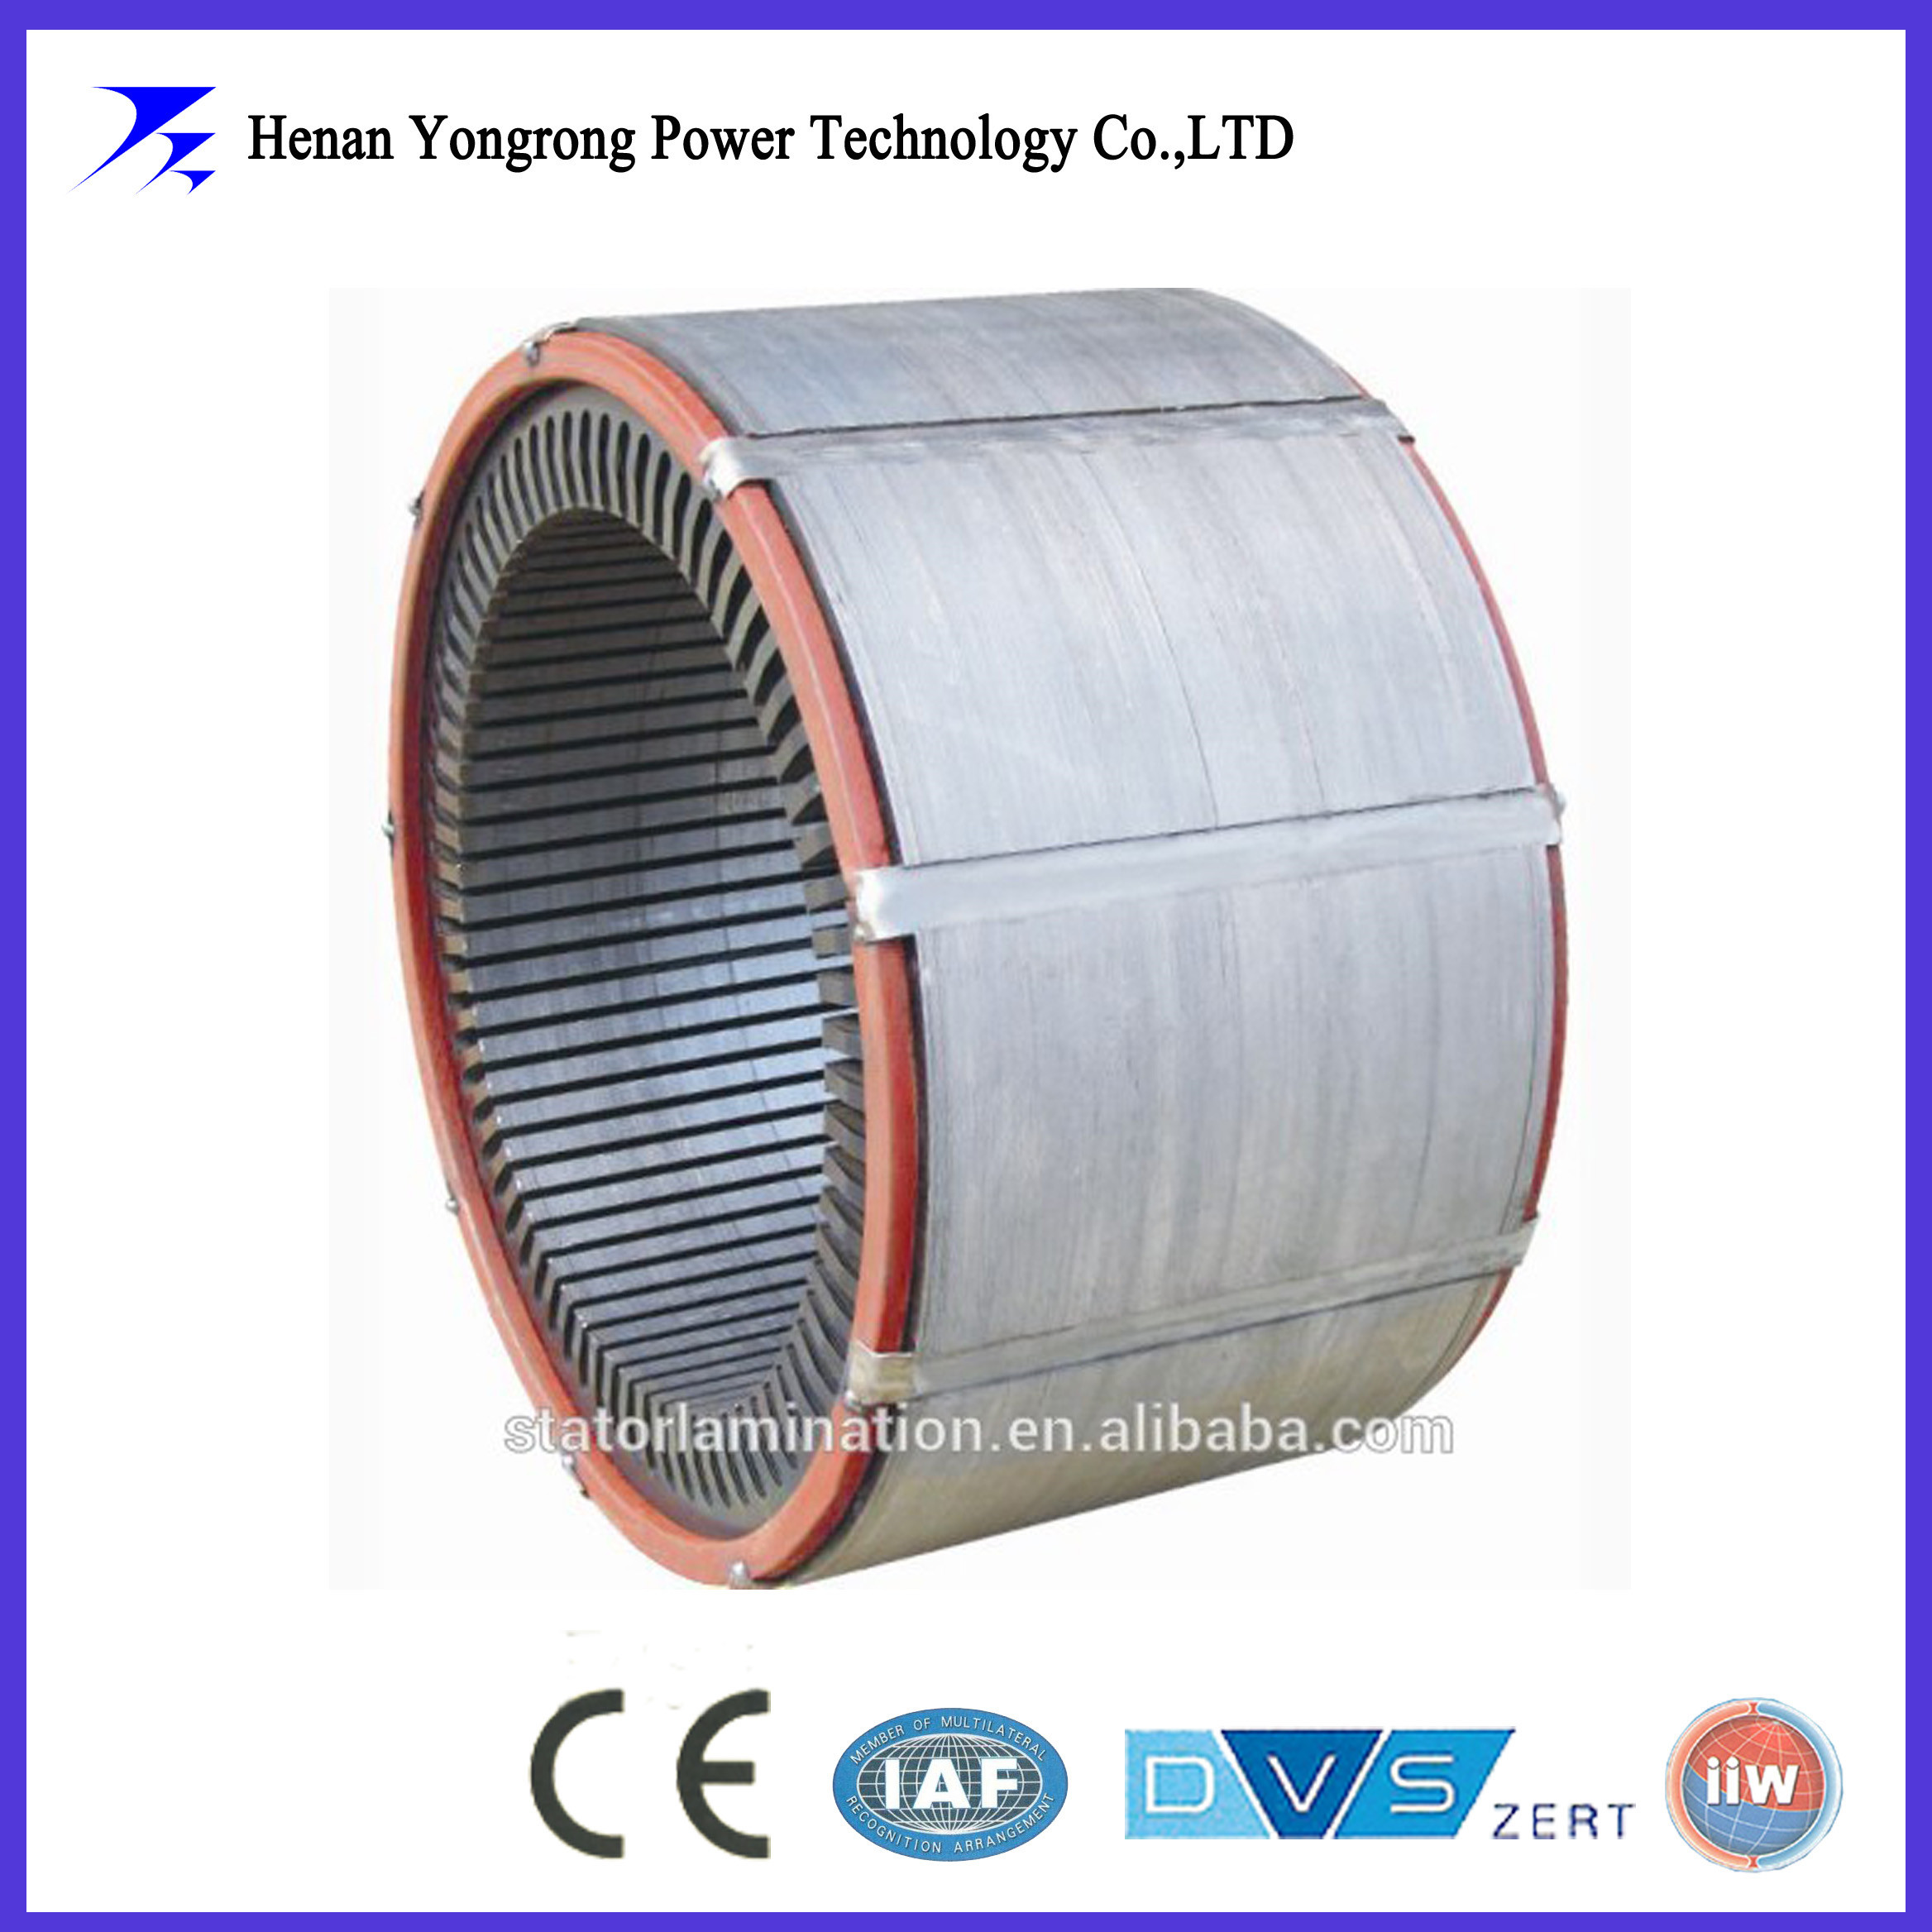 Stator stack assembly core for ac generator